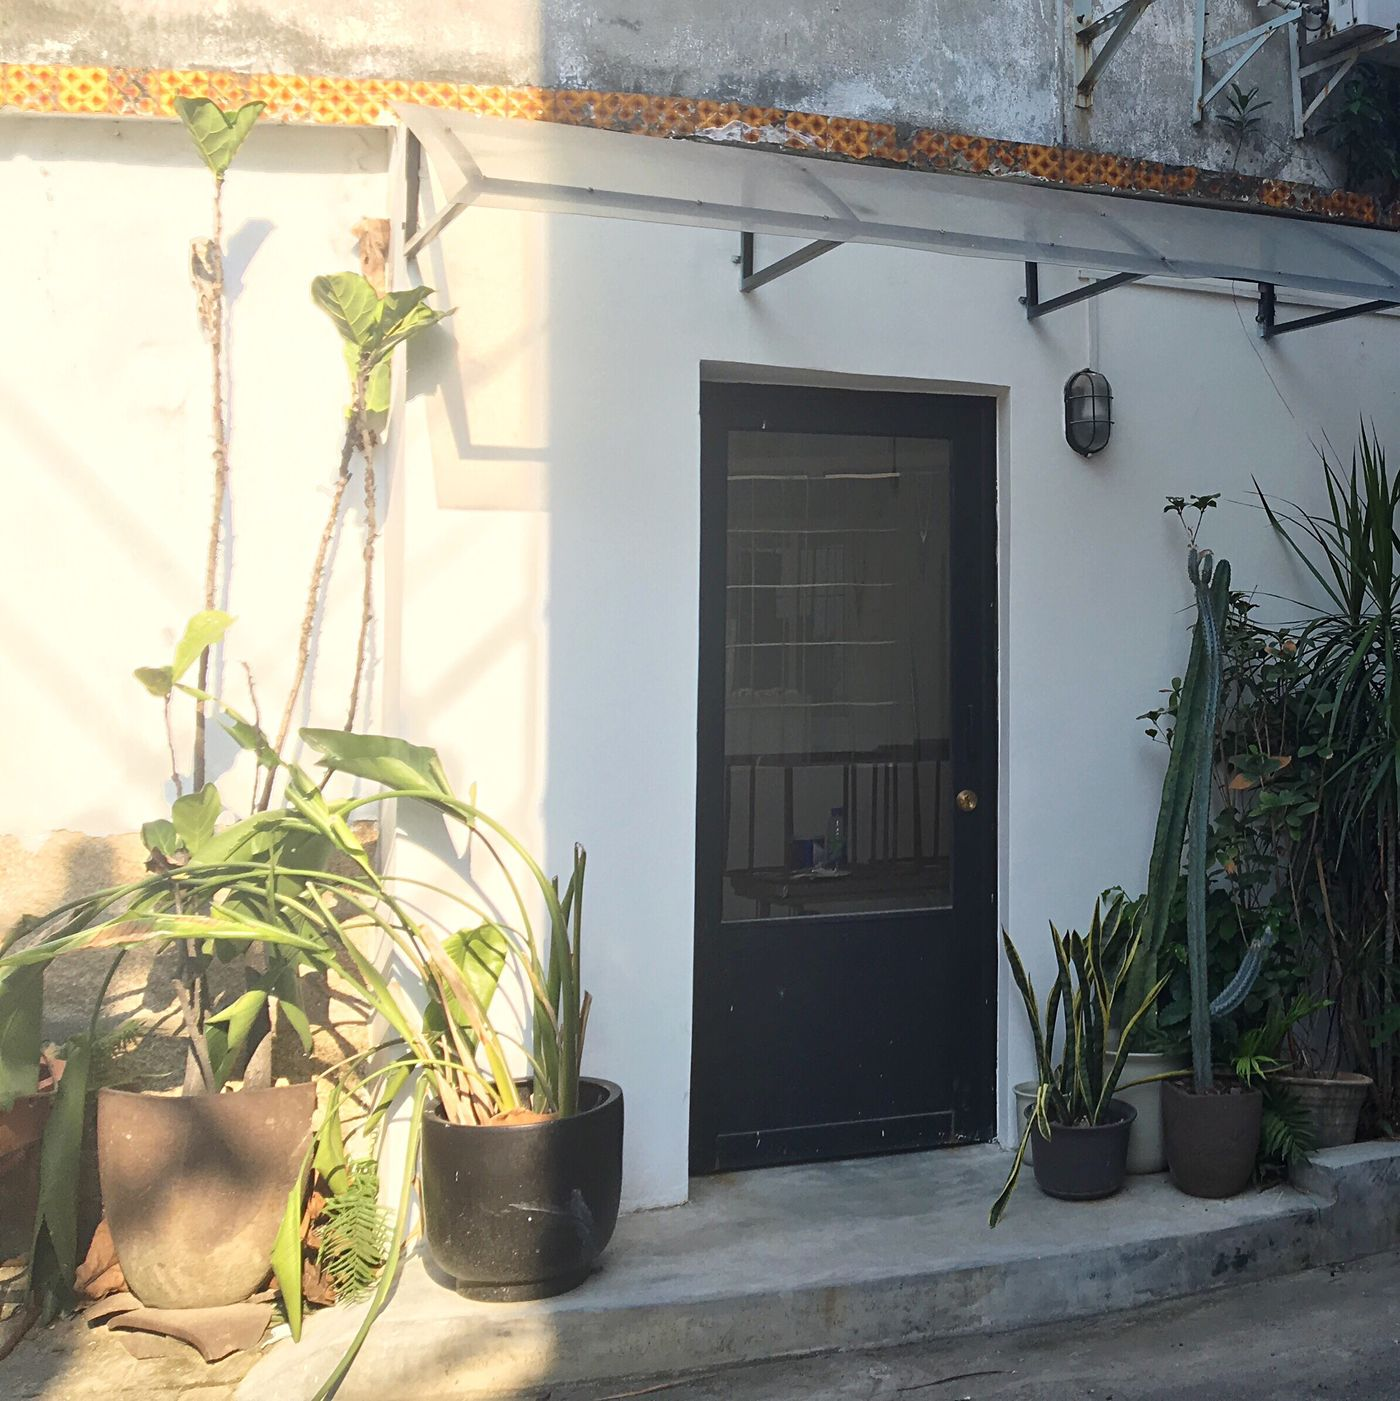 🎐 Wall - Building Feature Fine Art Photography Scenery Shop Plants Hanging Out Enjoying Life Easy Life Afternoon Sun Shadow Wall